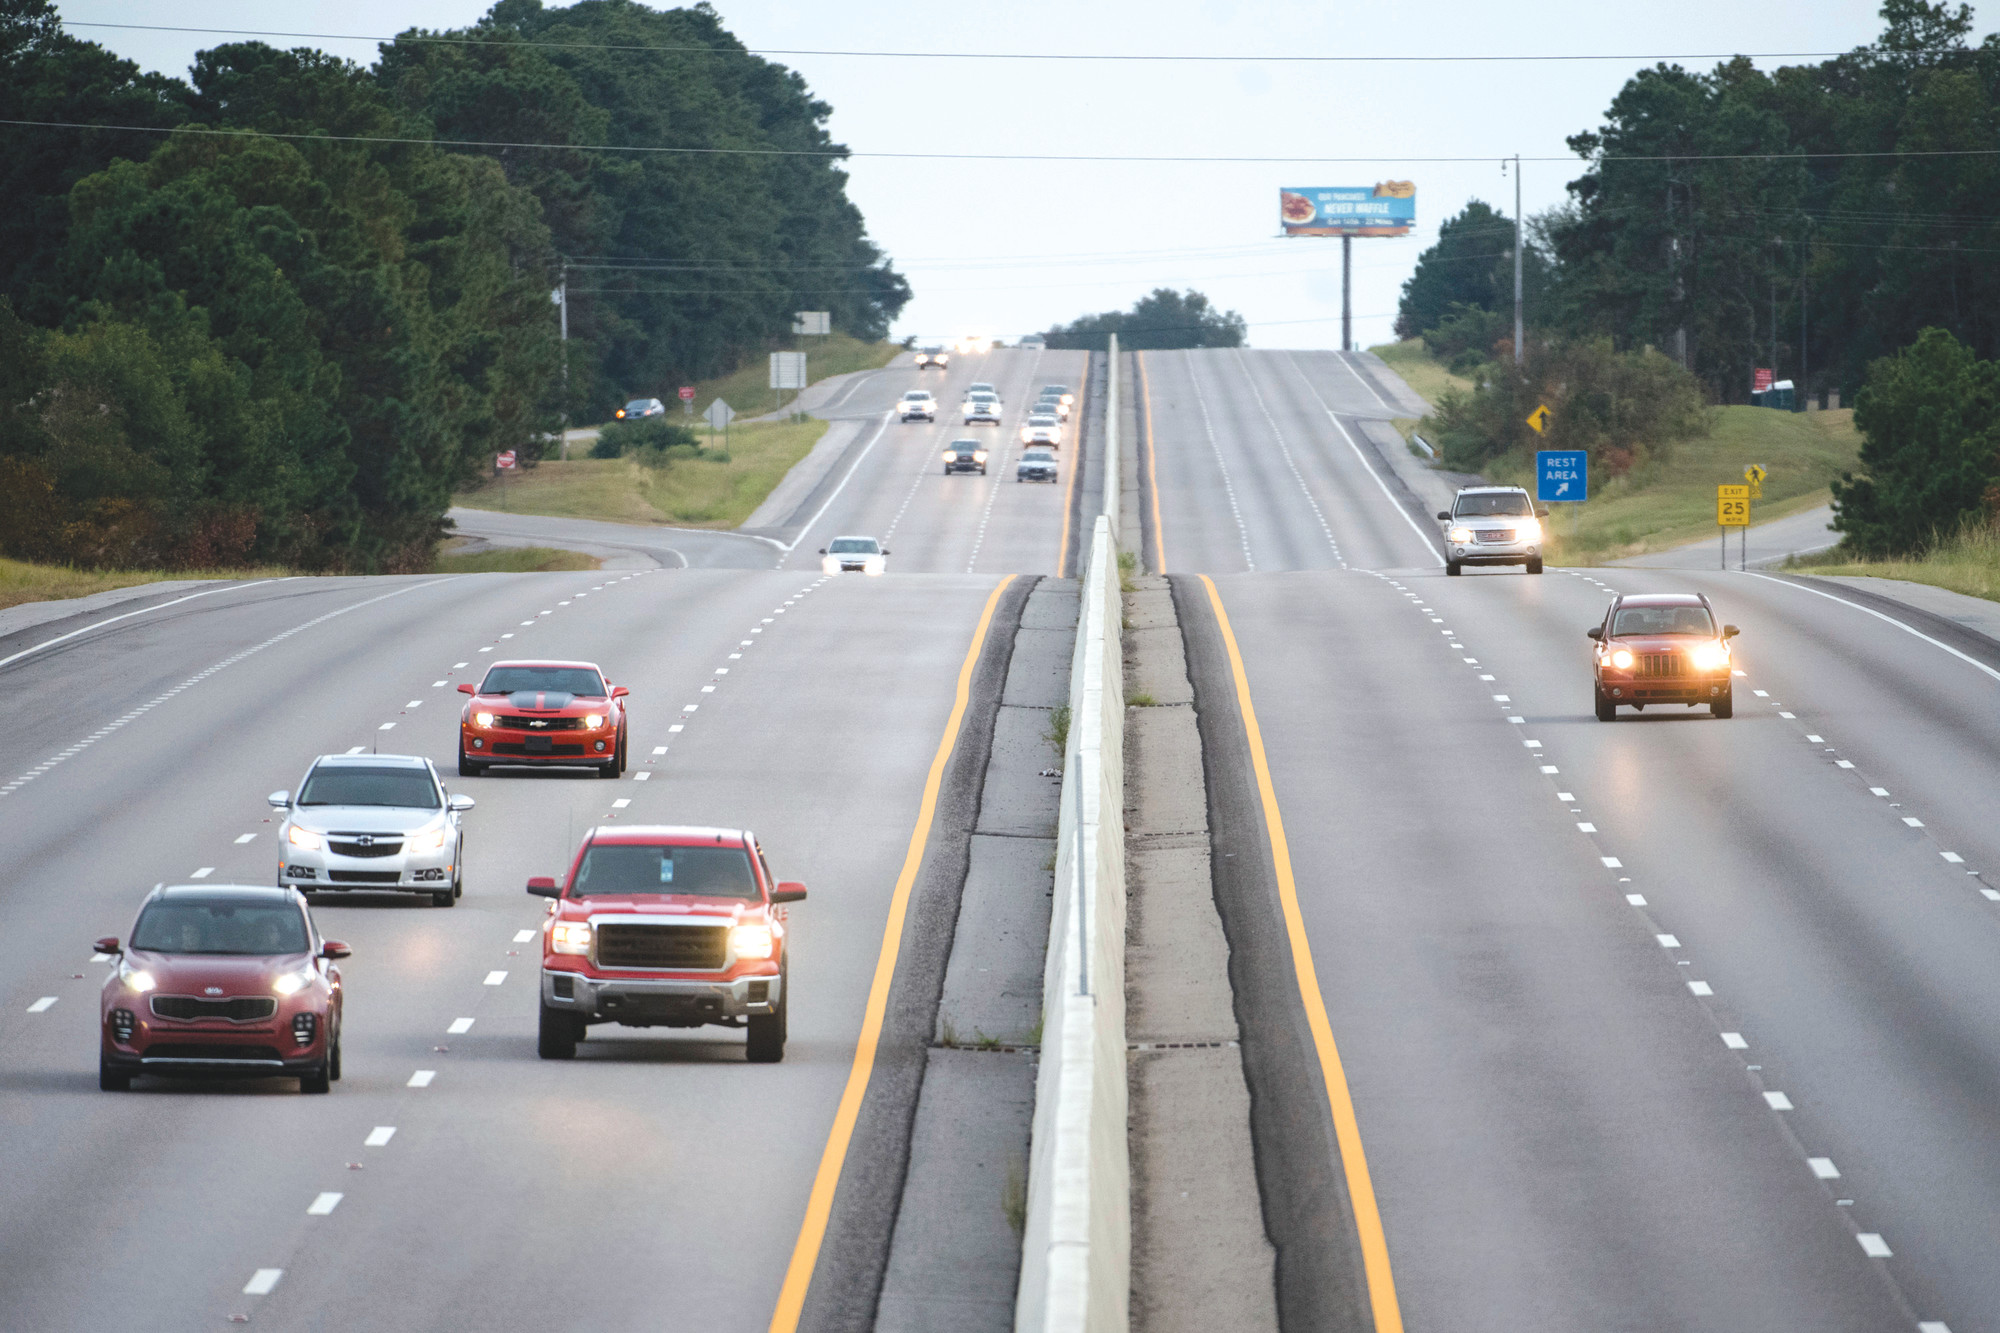 Traffic moves west on all lanes of Interstate 26 on Tuesday in Columbia. A lane reversal was implemented earlier in the day, utilizing all lanes for travel west between Charleston and Columbia in anticipation of the arrival of Hurricane Florence.